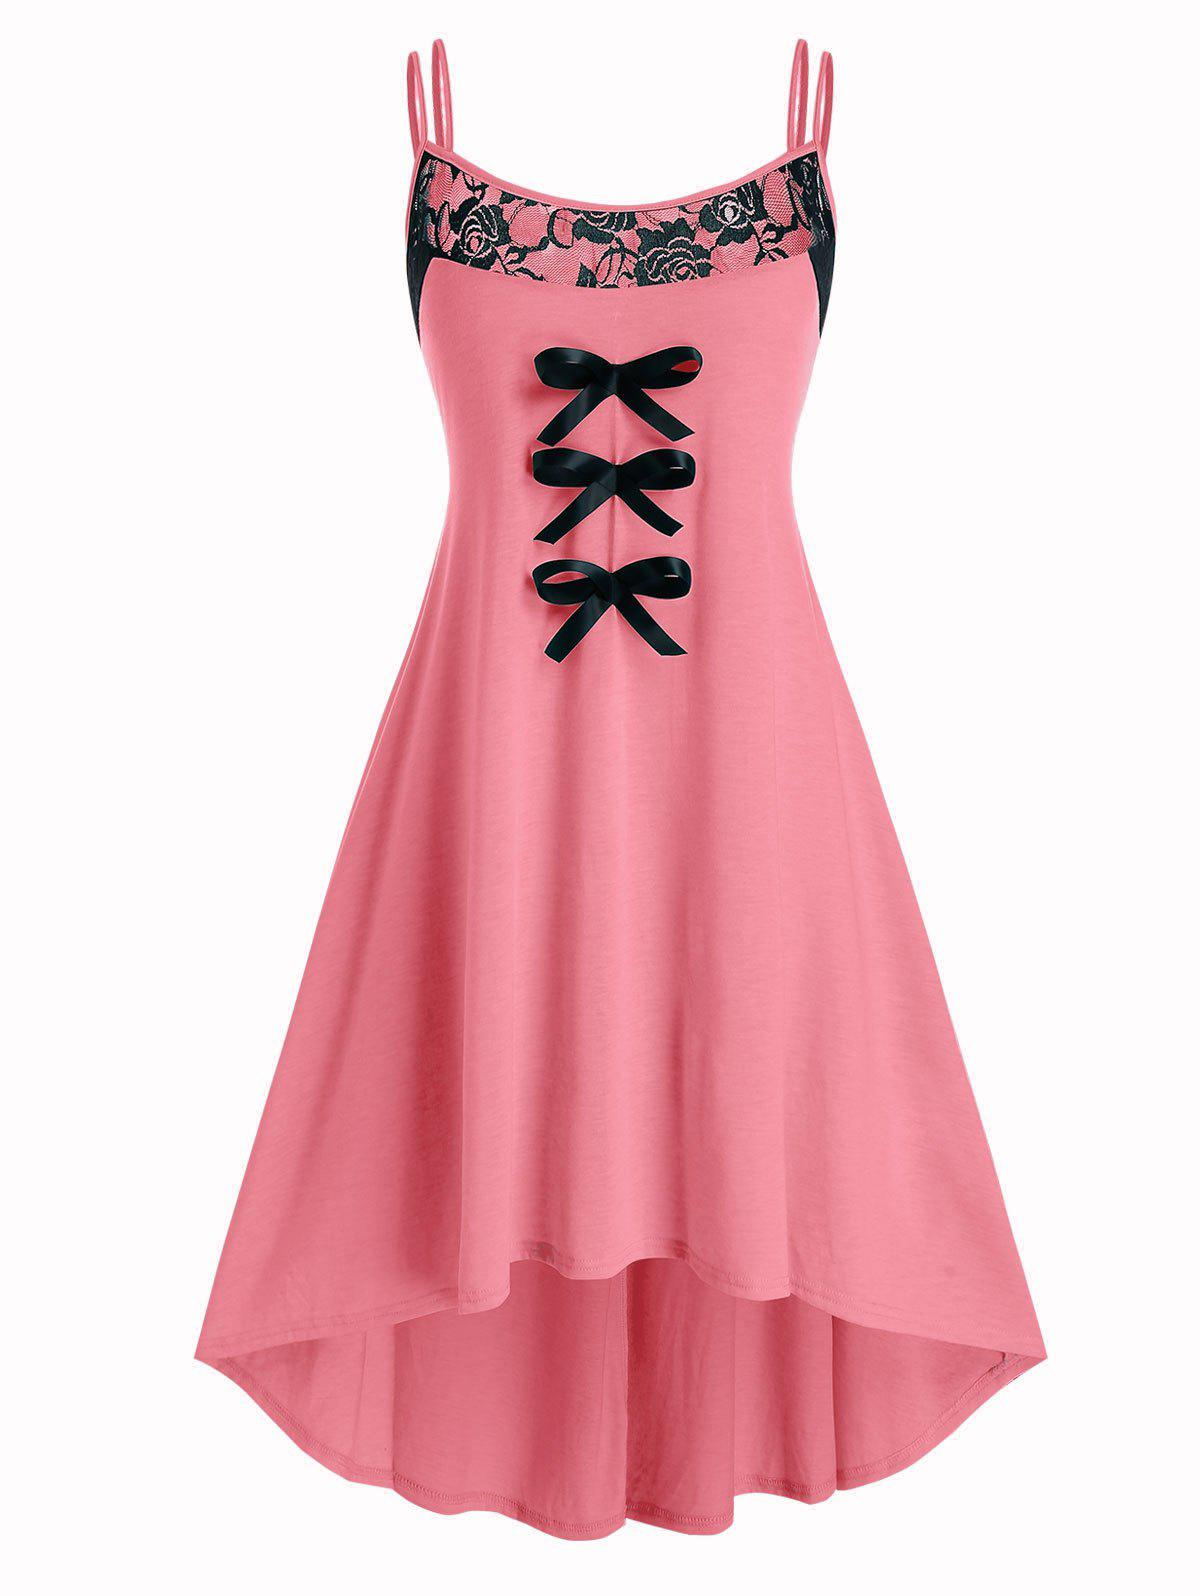 Plus Size Bowknot Floral Lace Panel Dress - LIGHT CORAL L